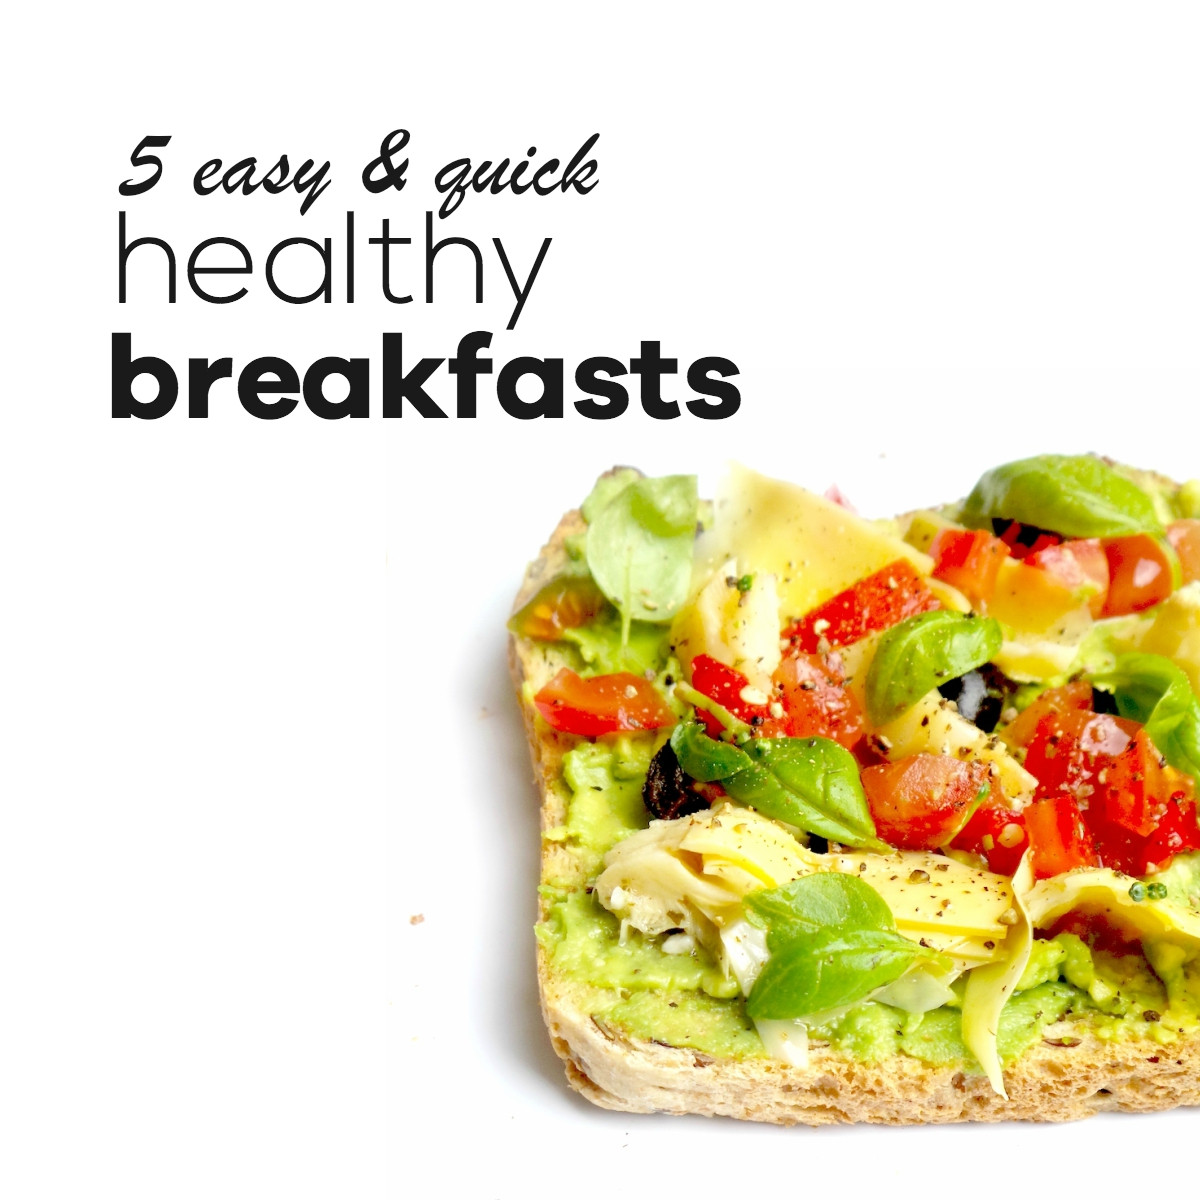 Healthy Breakfast That Keeps You Full  Easy Healthy Breakfasts To Start Your Day Right & Keep You